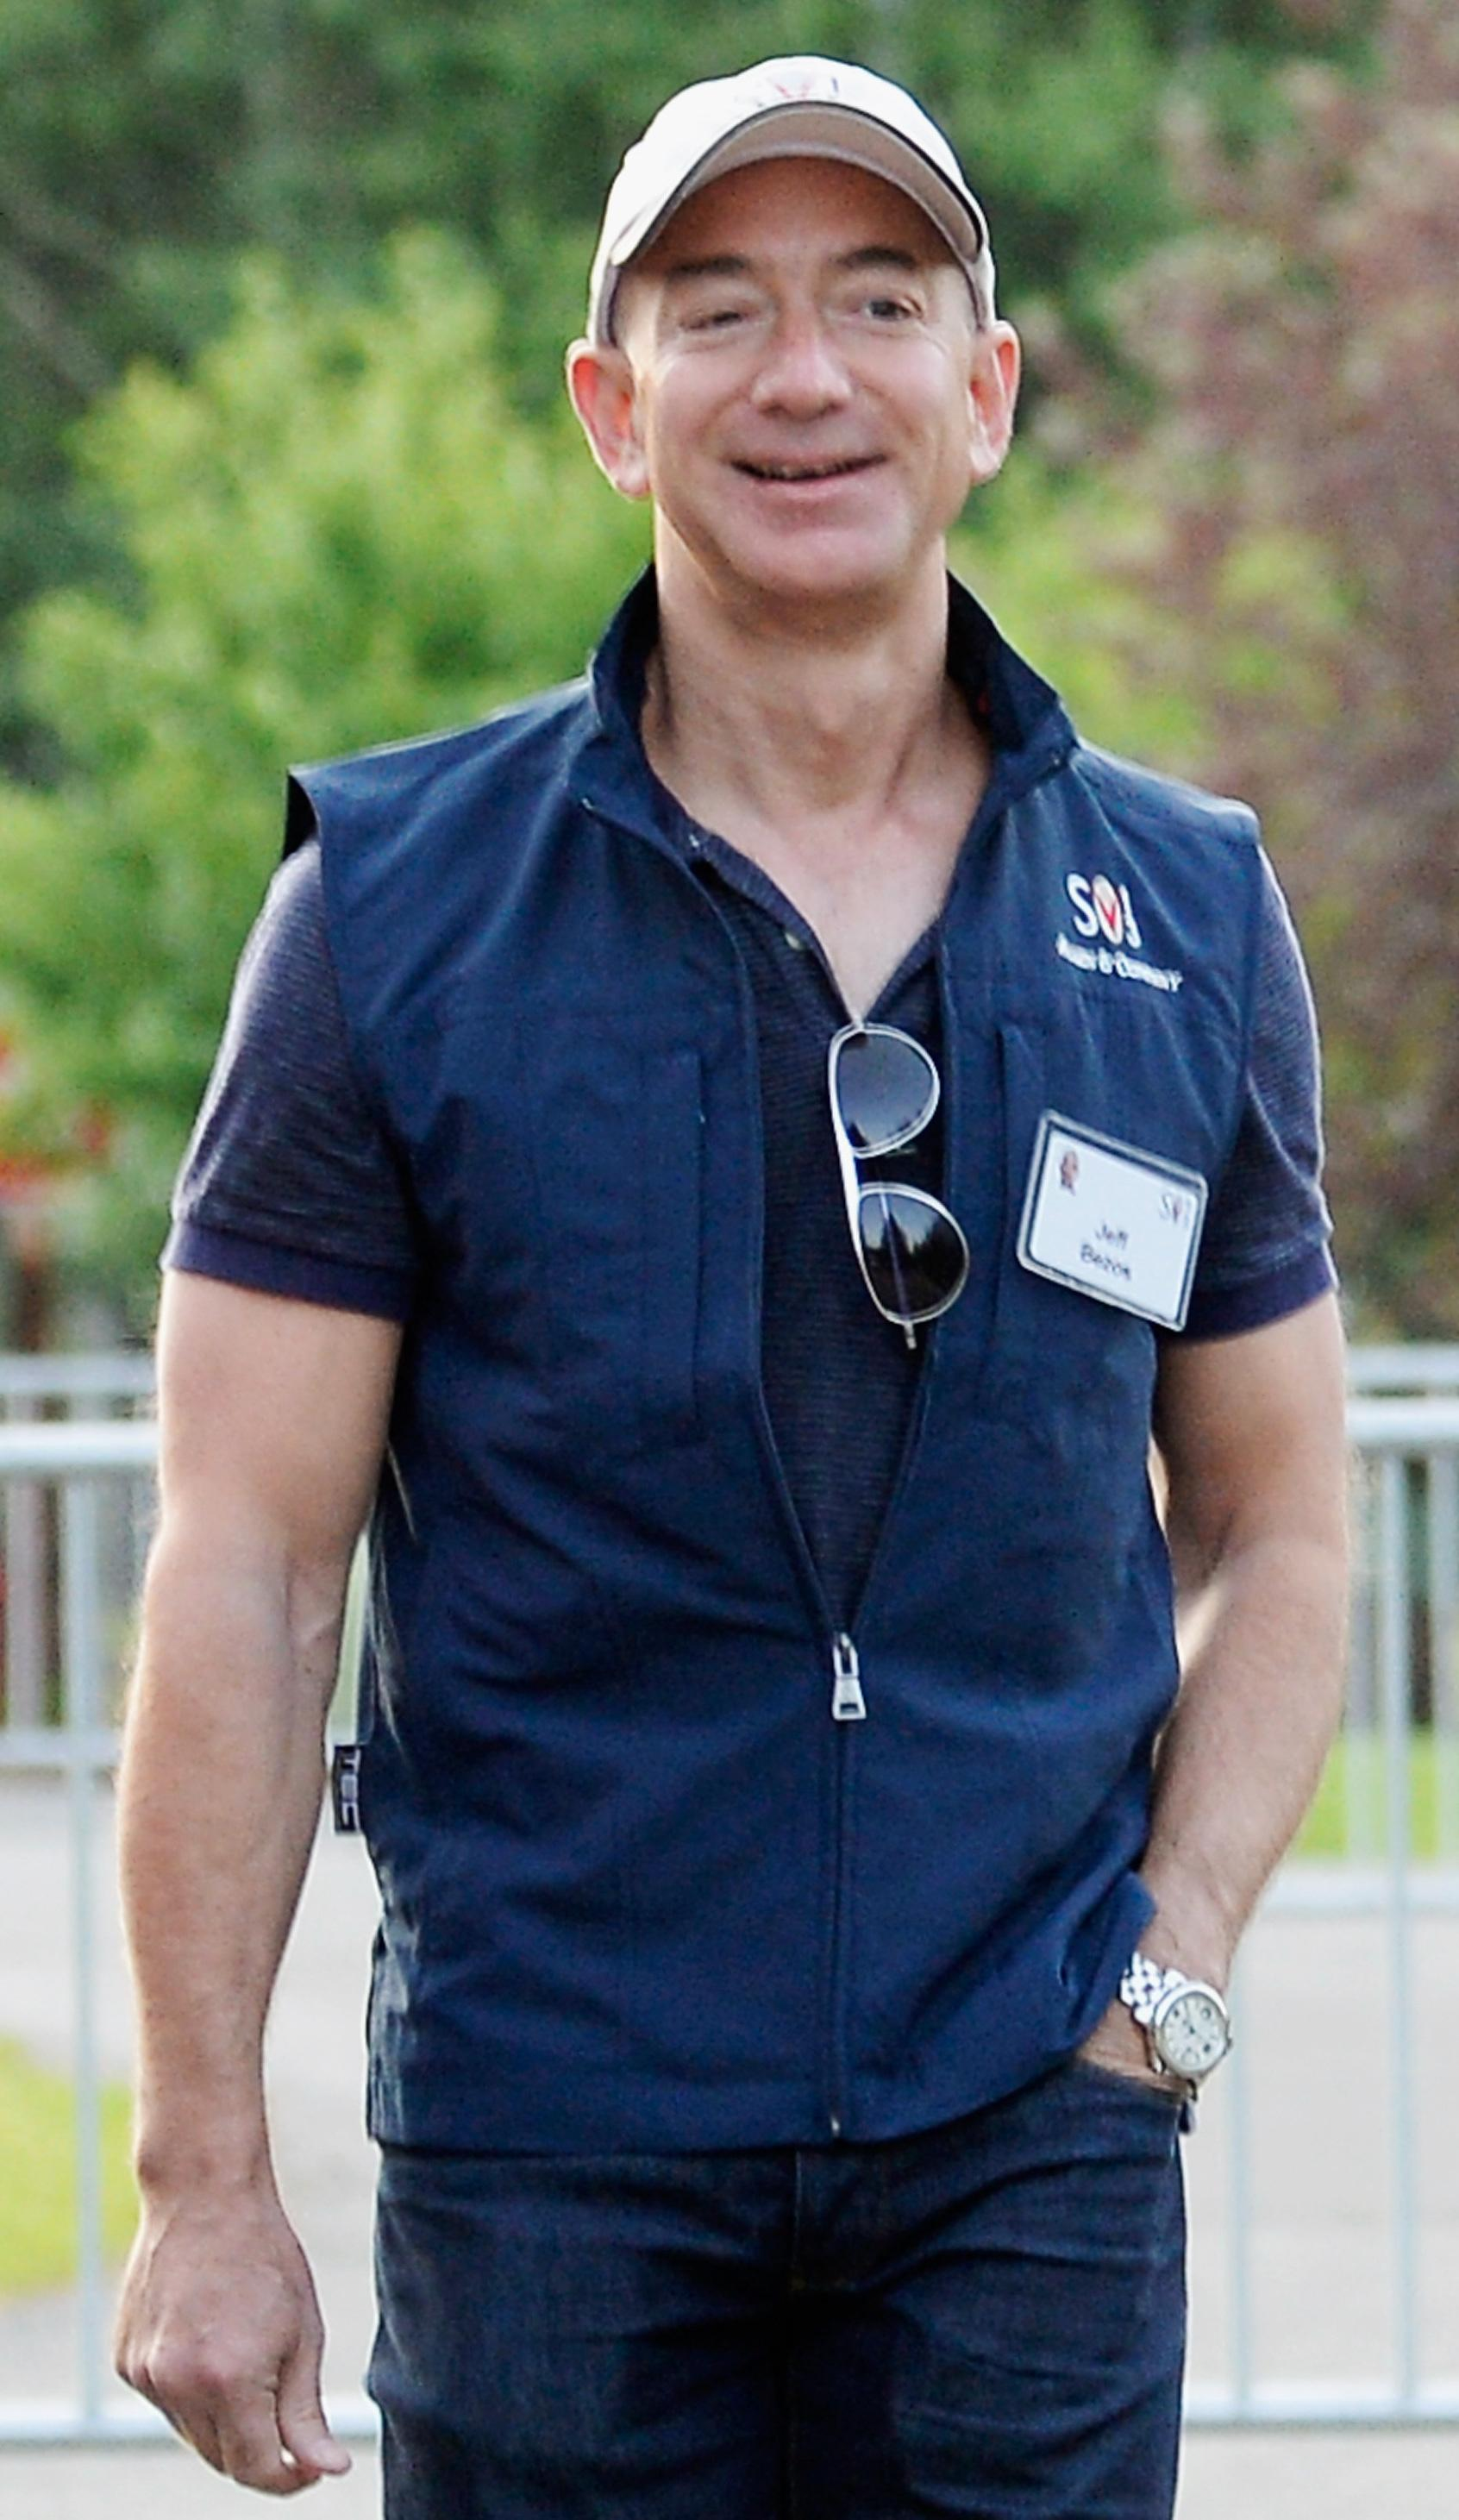 leadership style of jeff bezos Now i totally understand why amazon is an amazing company, jeff bezos has been applying these 14 leadership principles, continuing the successful journey and greatly polishing read more published 2 months ago.